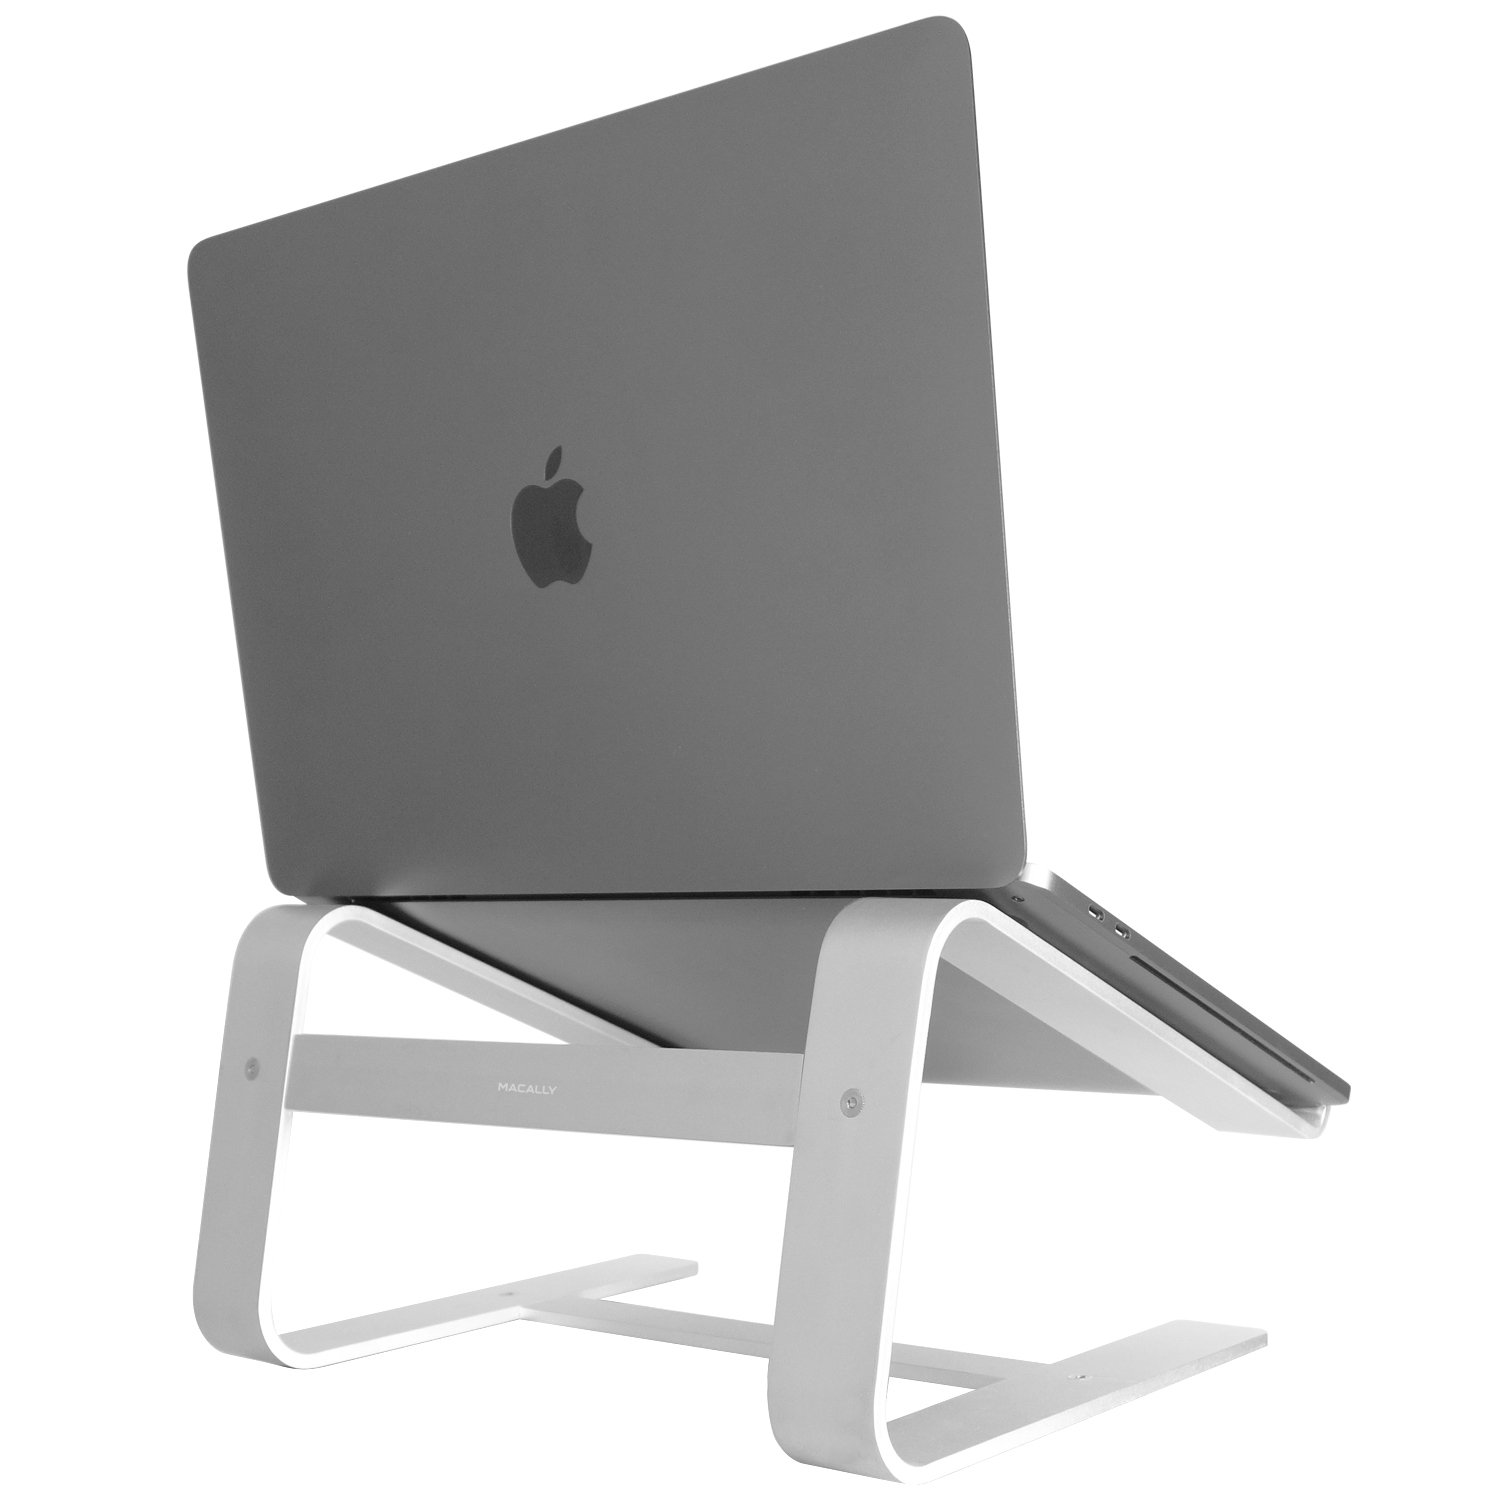 "Macally Aluminum Laptop Stand for Desk & All Apple Macbook 12"" / Pro / Air, Chromebook, Samsung, Acer, HP, Dell, & any Notebook between 10"" to 17.3"" (ASTAND)"